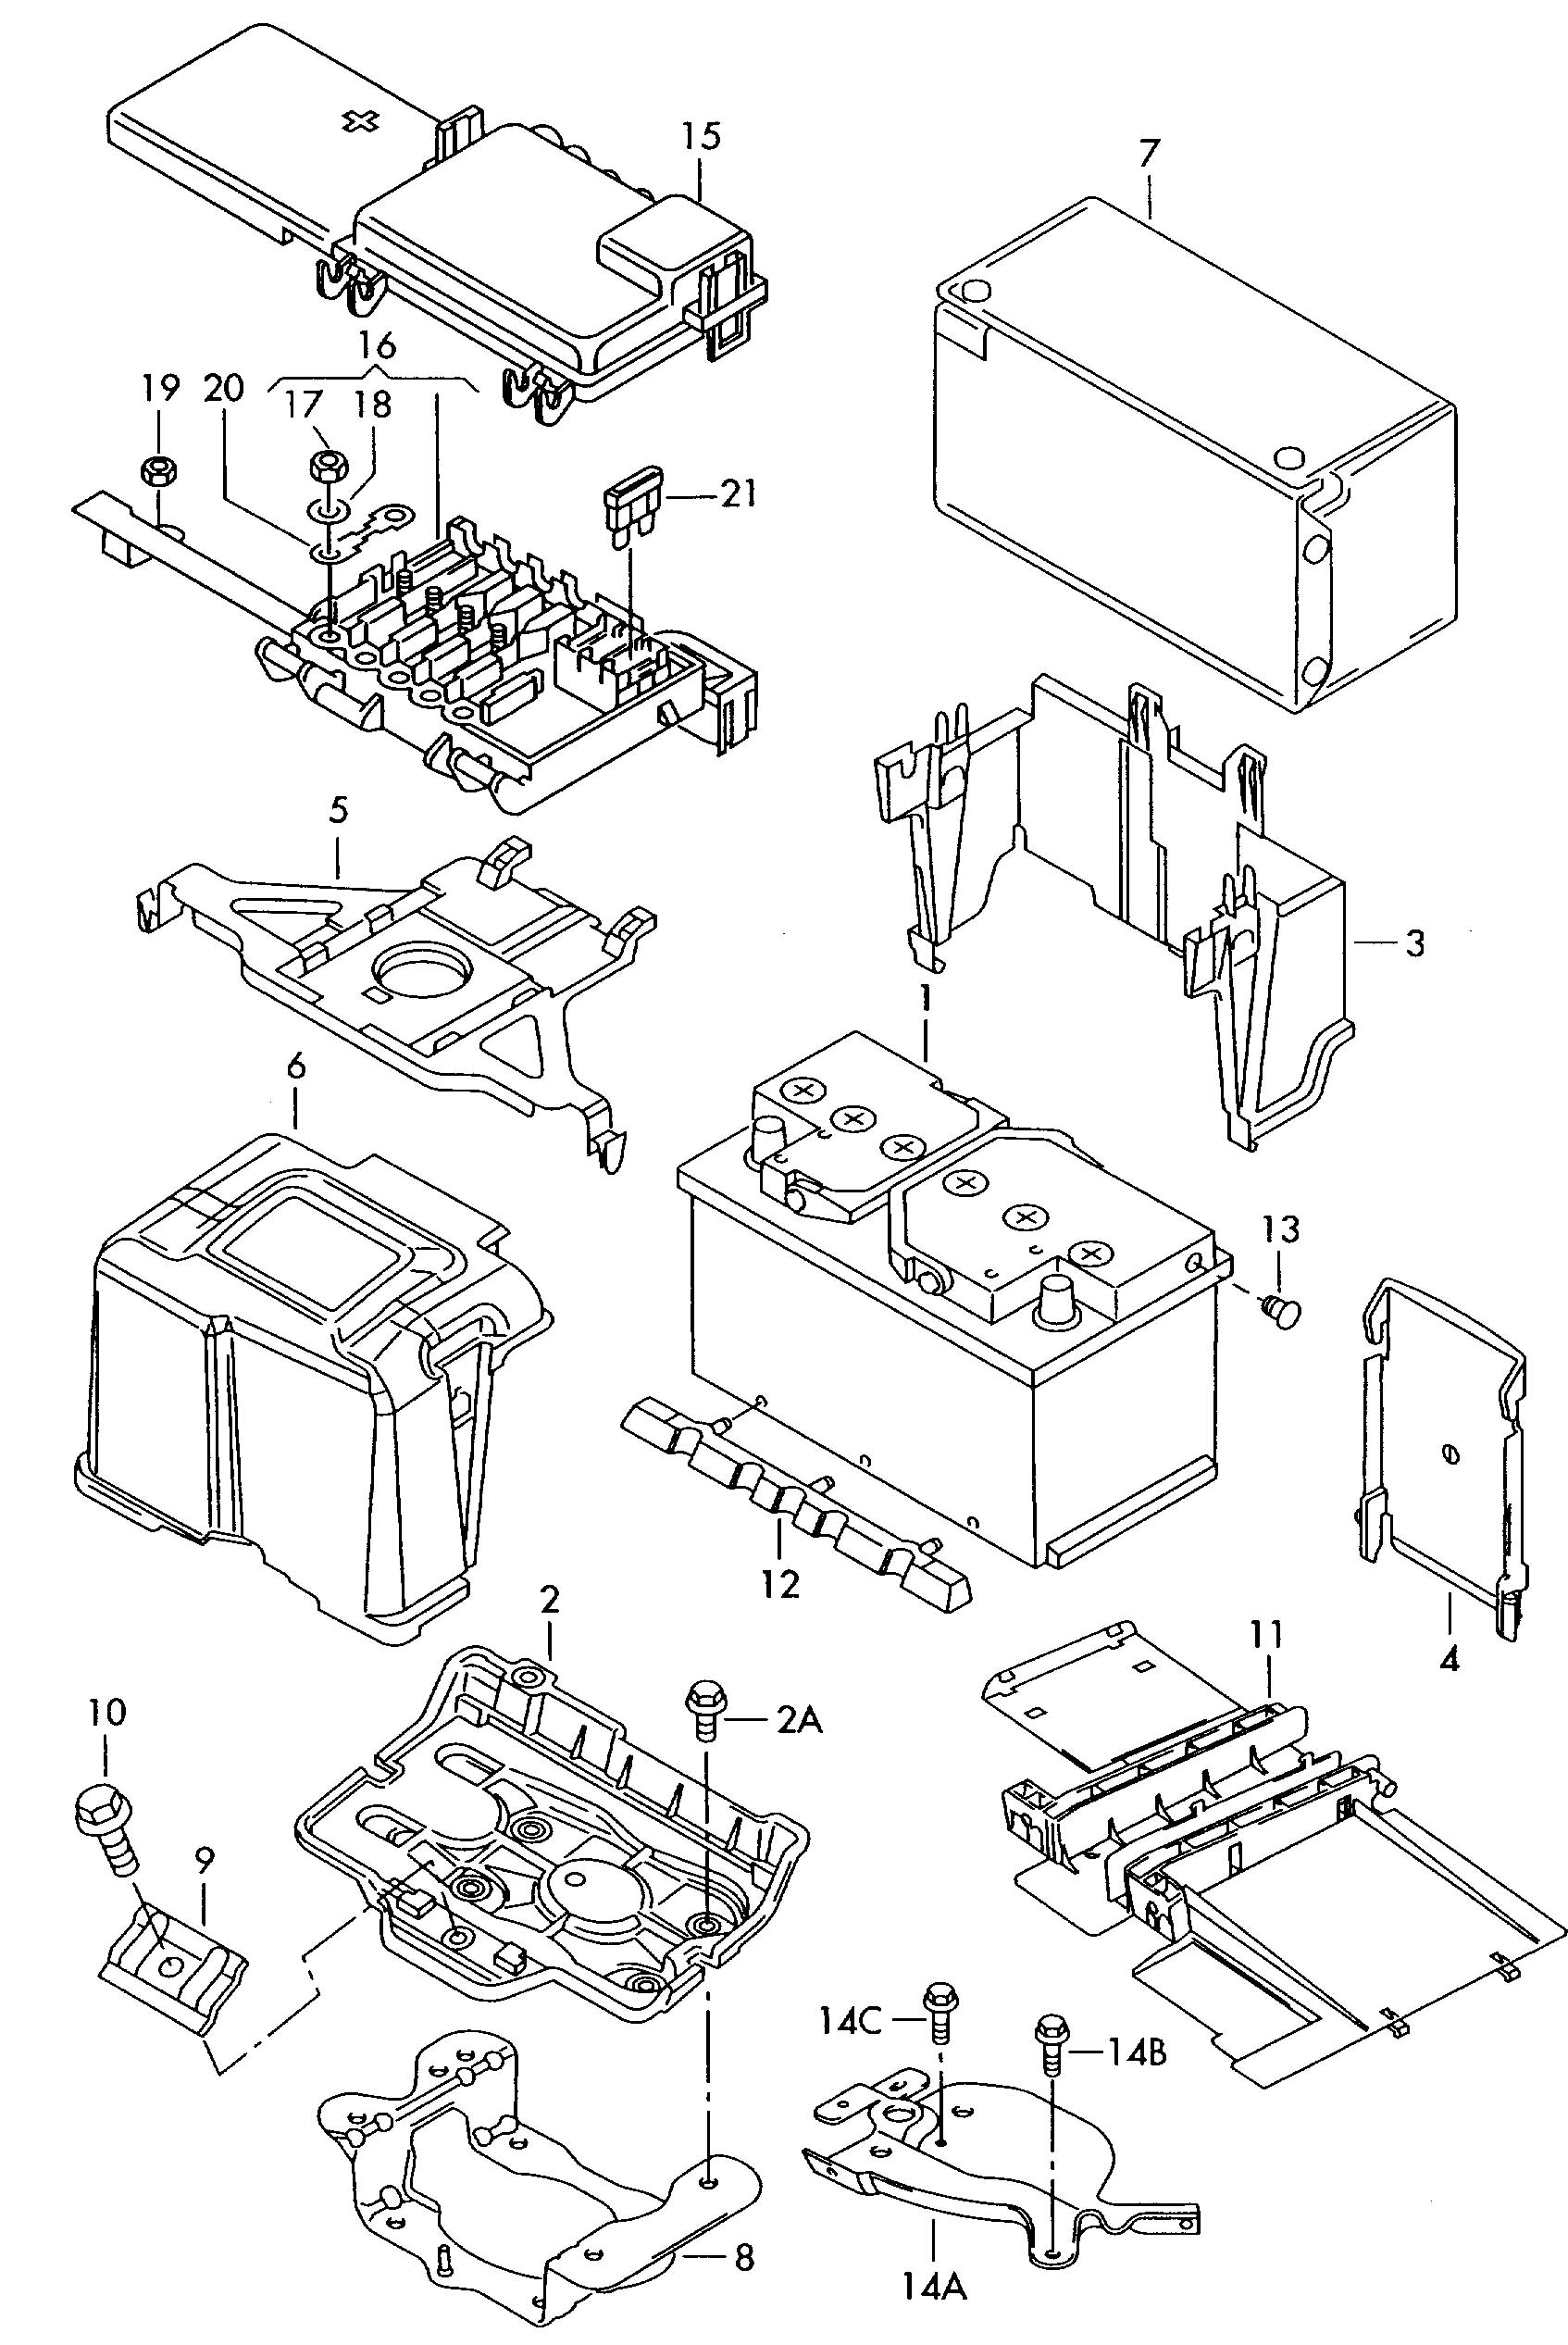 Vw Golf R32 Transmission Engine Diagram And Wiring Fuse Box Parts Further Mk1 Also Product Eng 918 Ferrea Valve